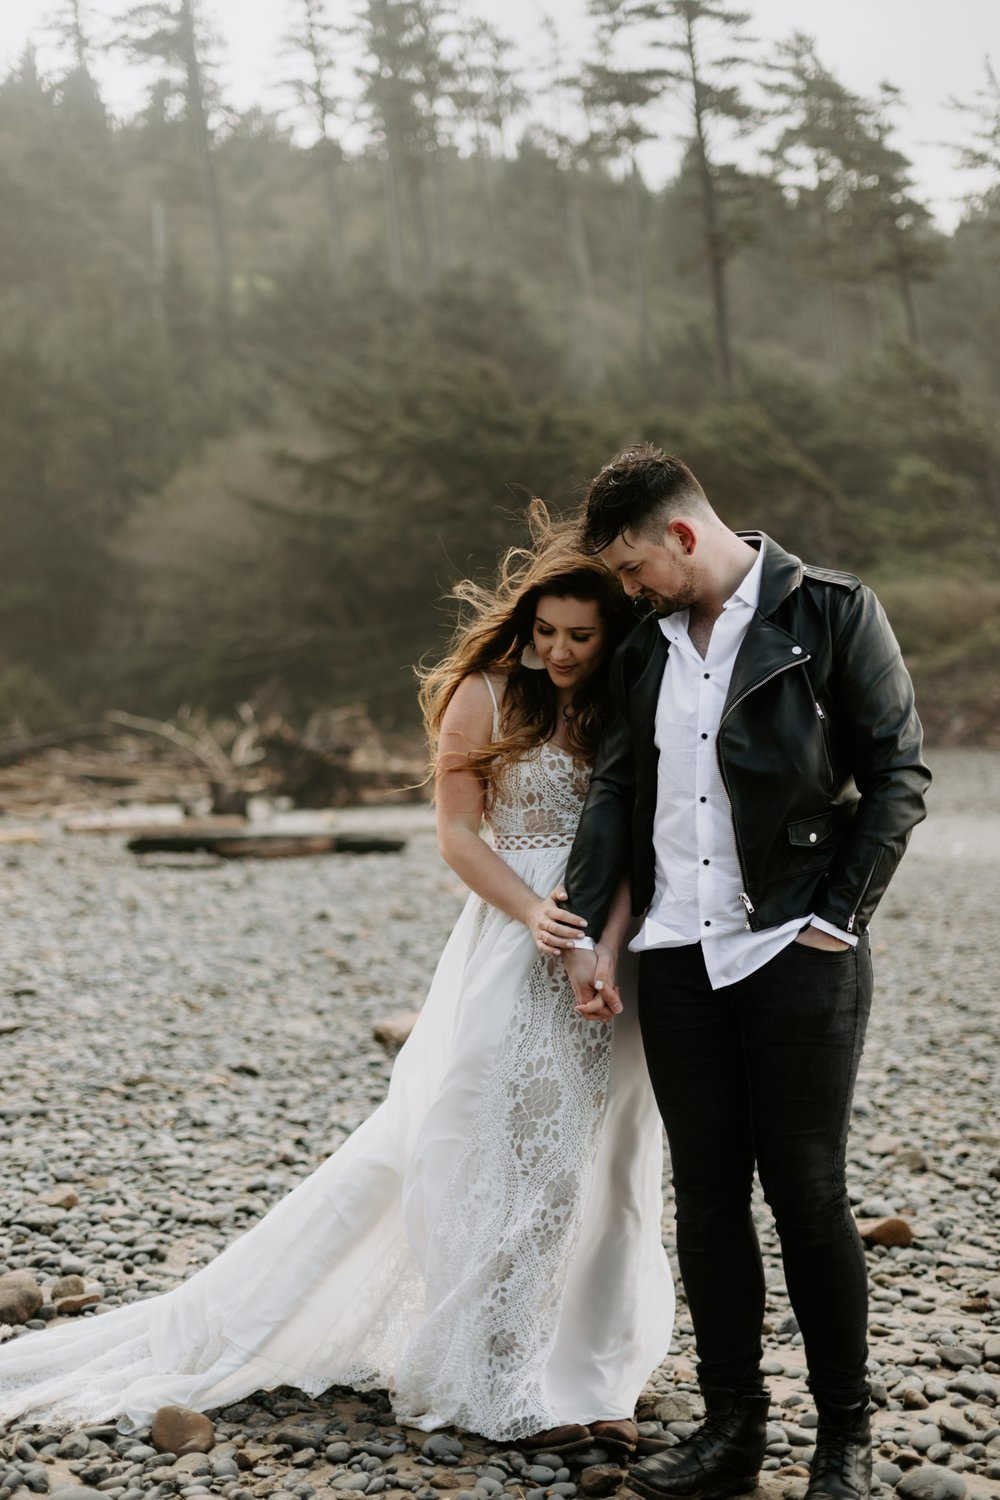 adventurous-cannon-beach-elopement-2018-04-26_0027.jpg